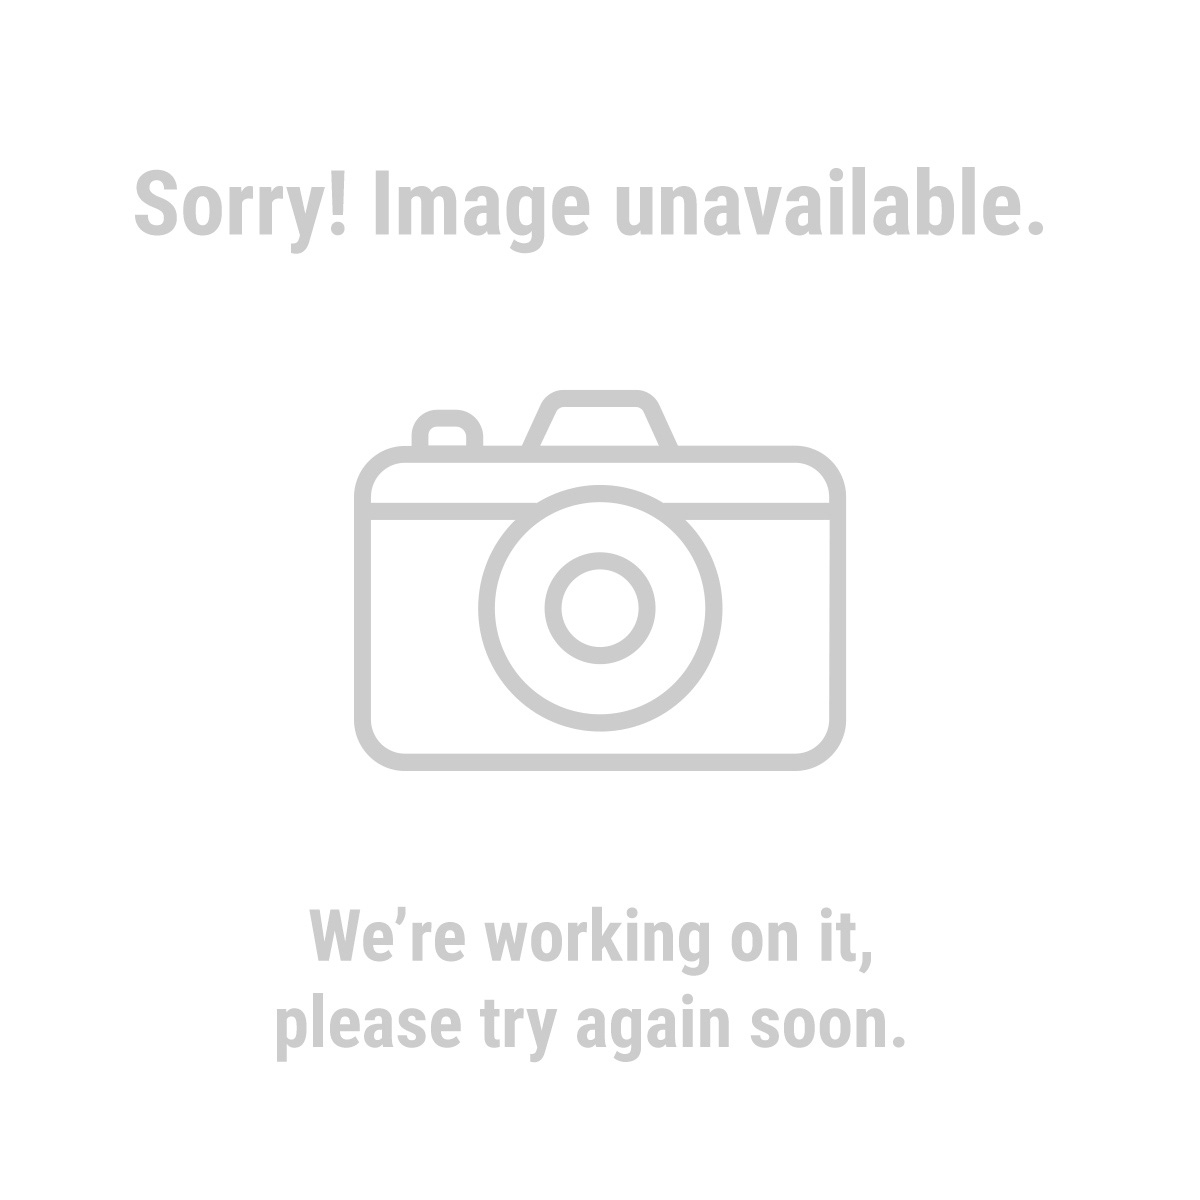 Central Machinery 60346 440 Lb. Electric Hoist with Remote Control